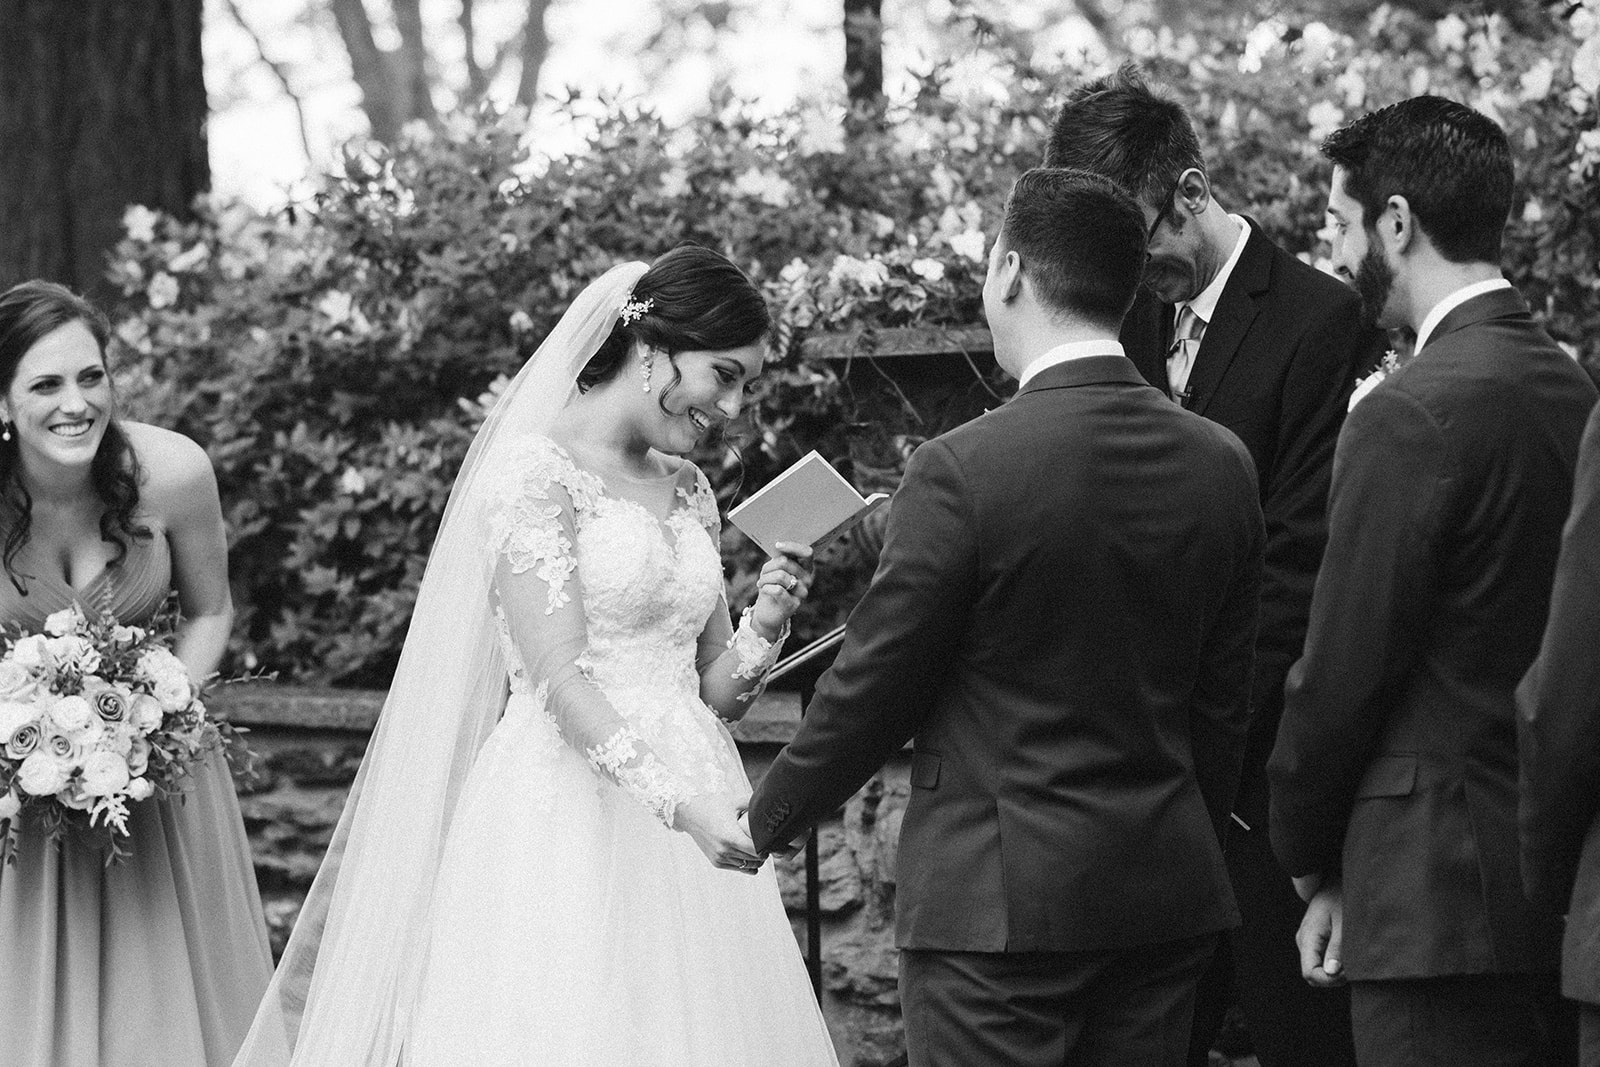 A bride shares her vows during the wedding ceremony at Drumore Estate.